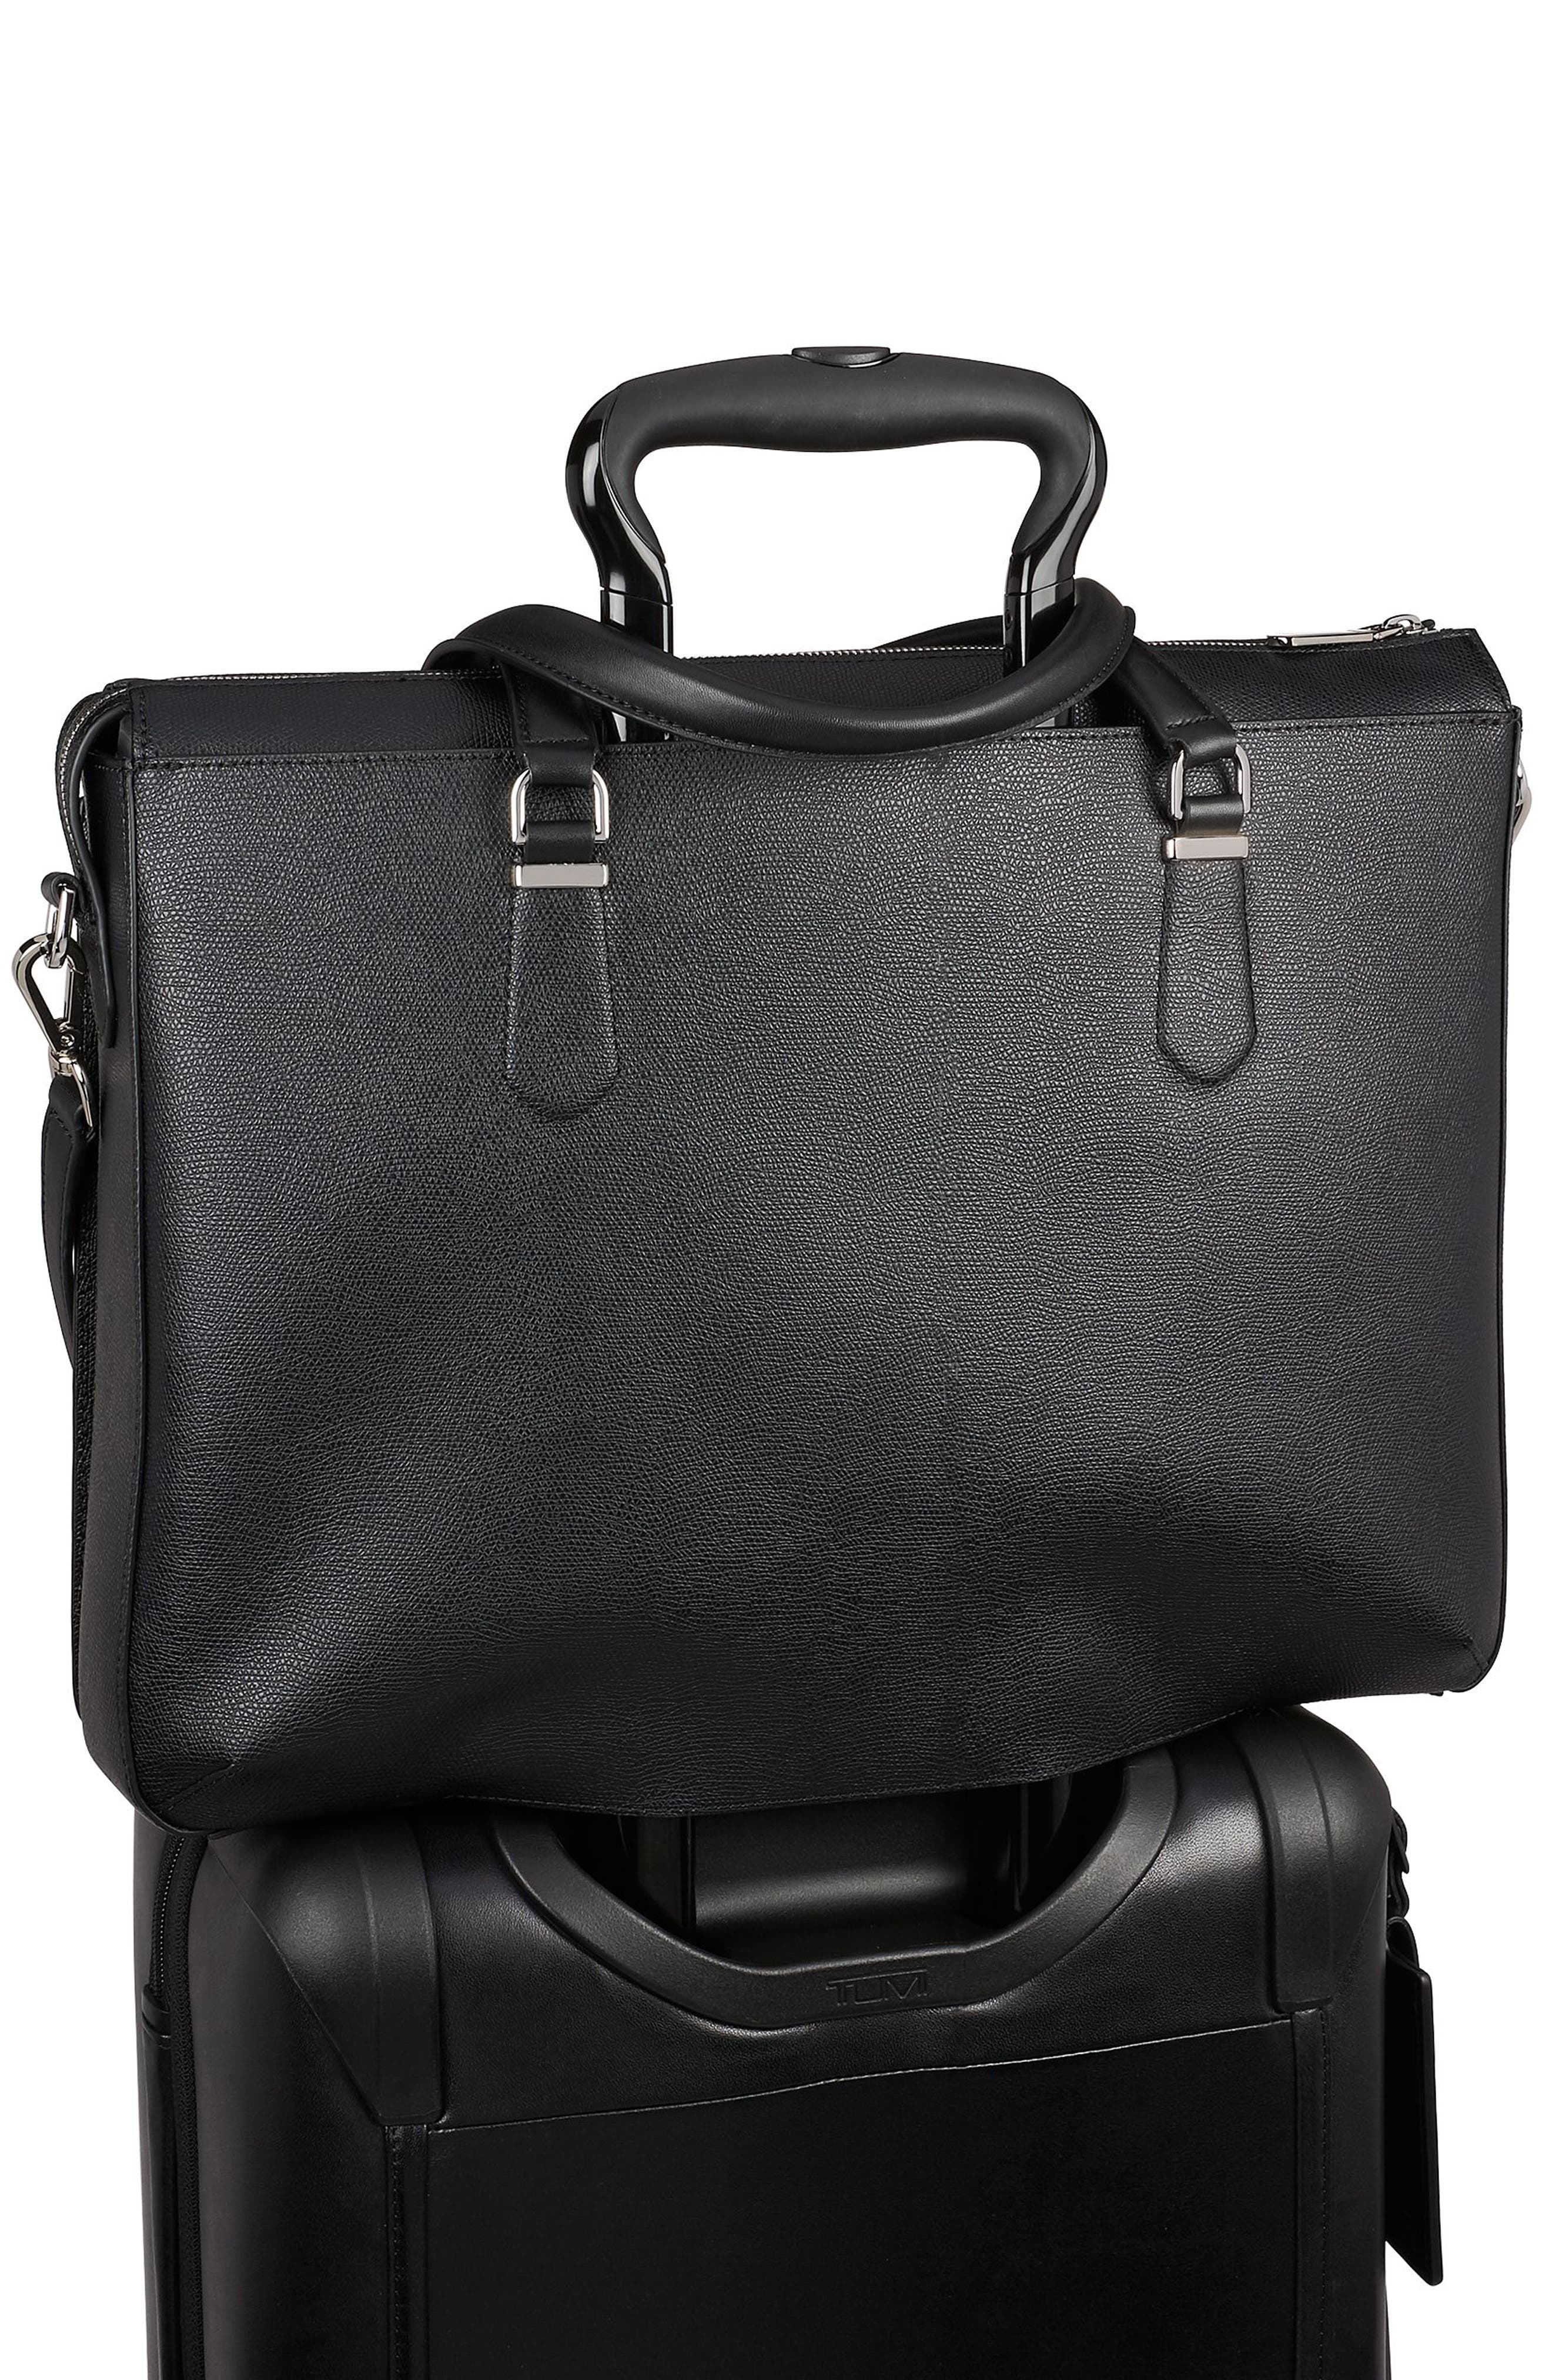 Nita Commuter Briefcase,                             Alternate thumbnail 3, color,                             001